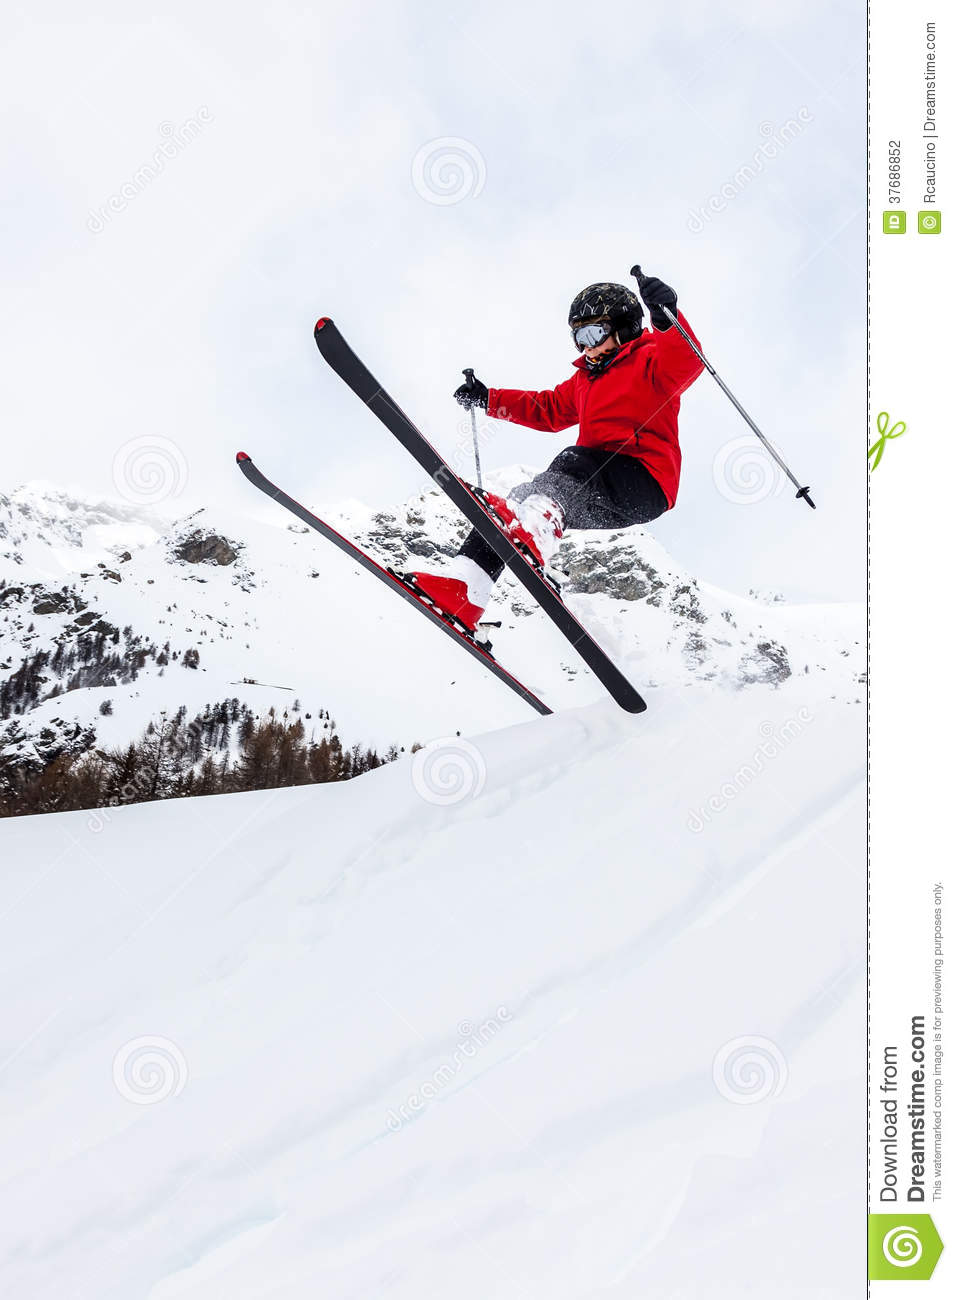 Little Skier Jumping In The Snow. Stock Photography ...